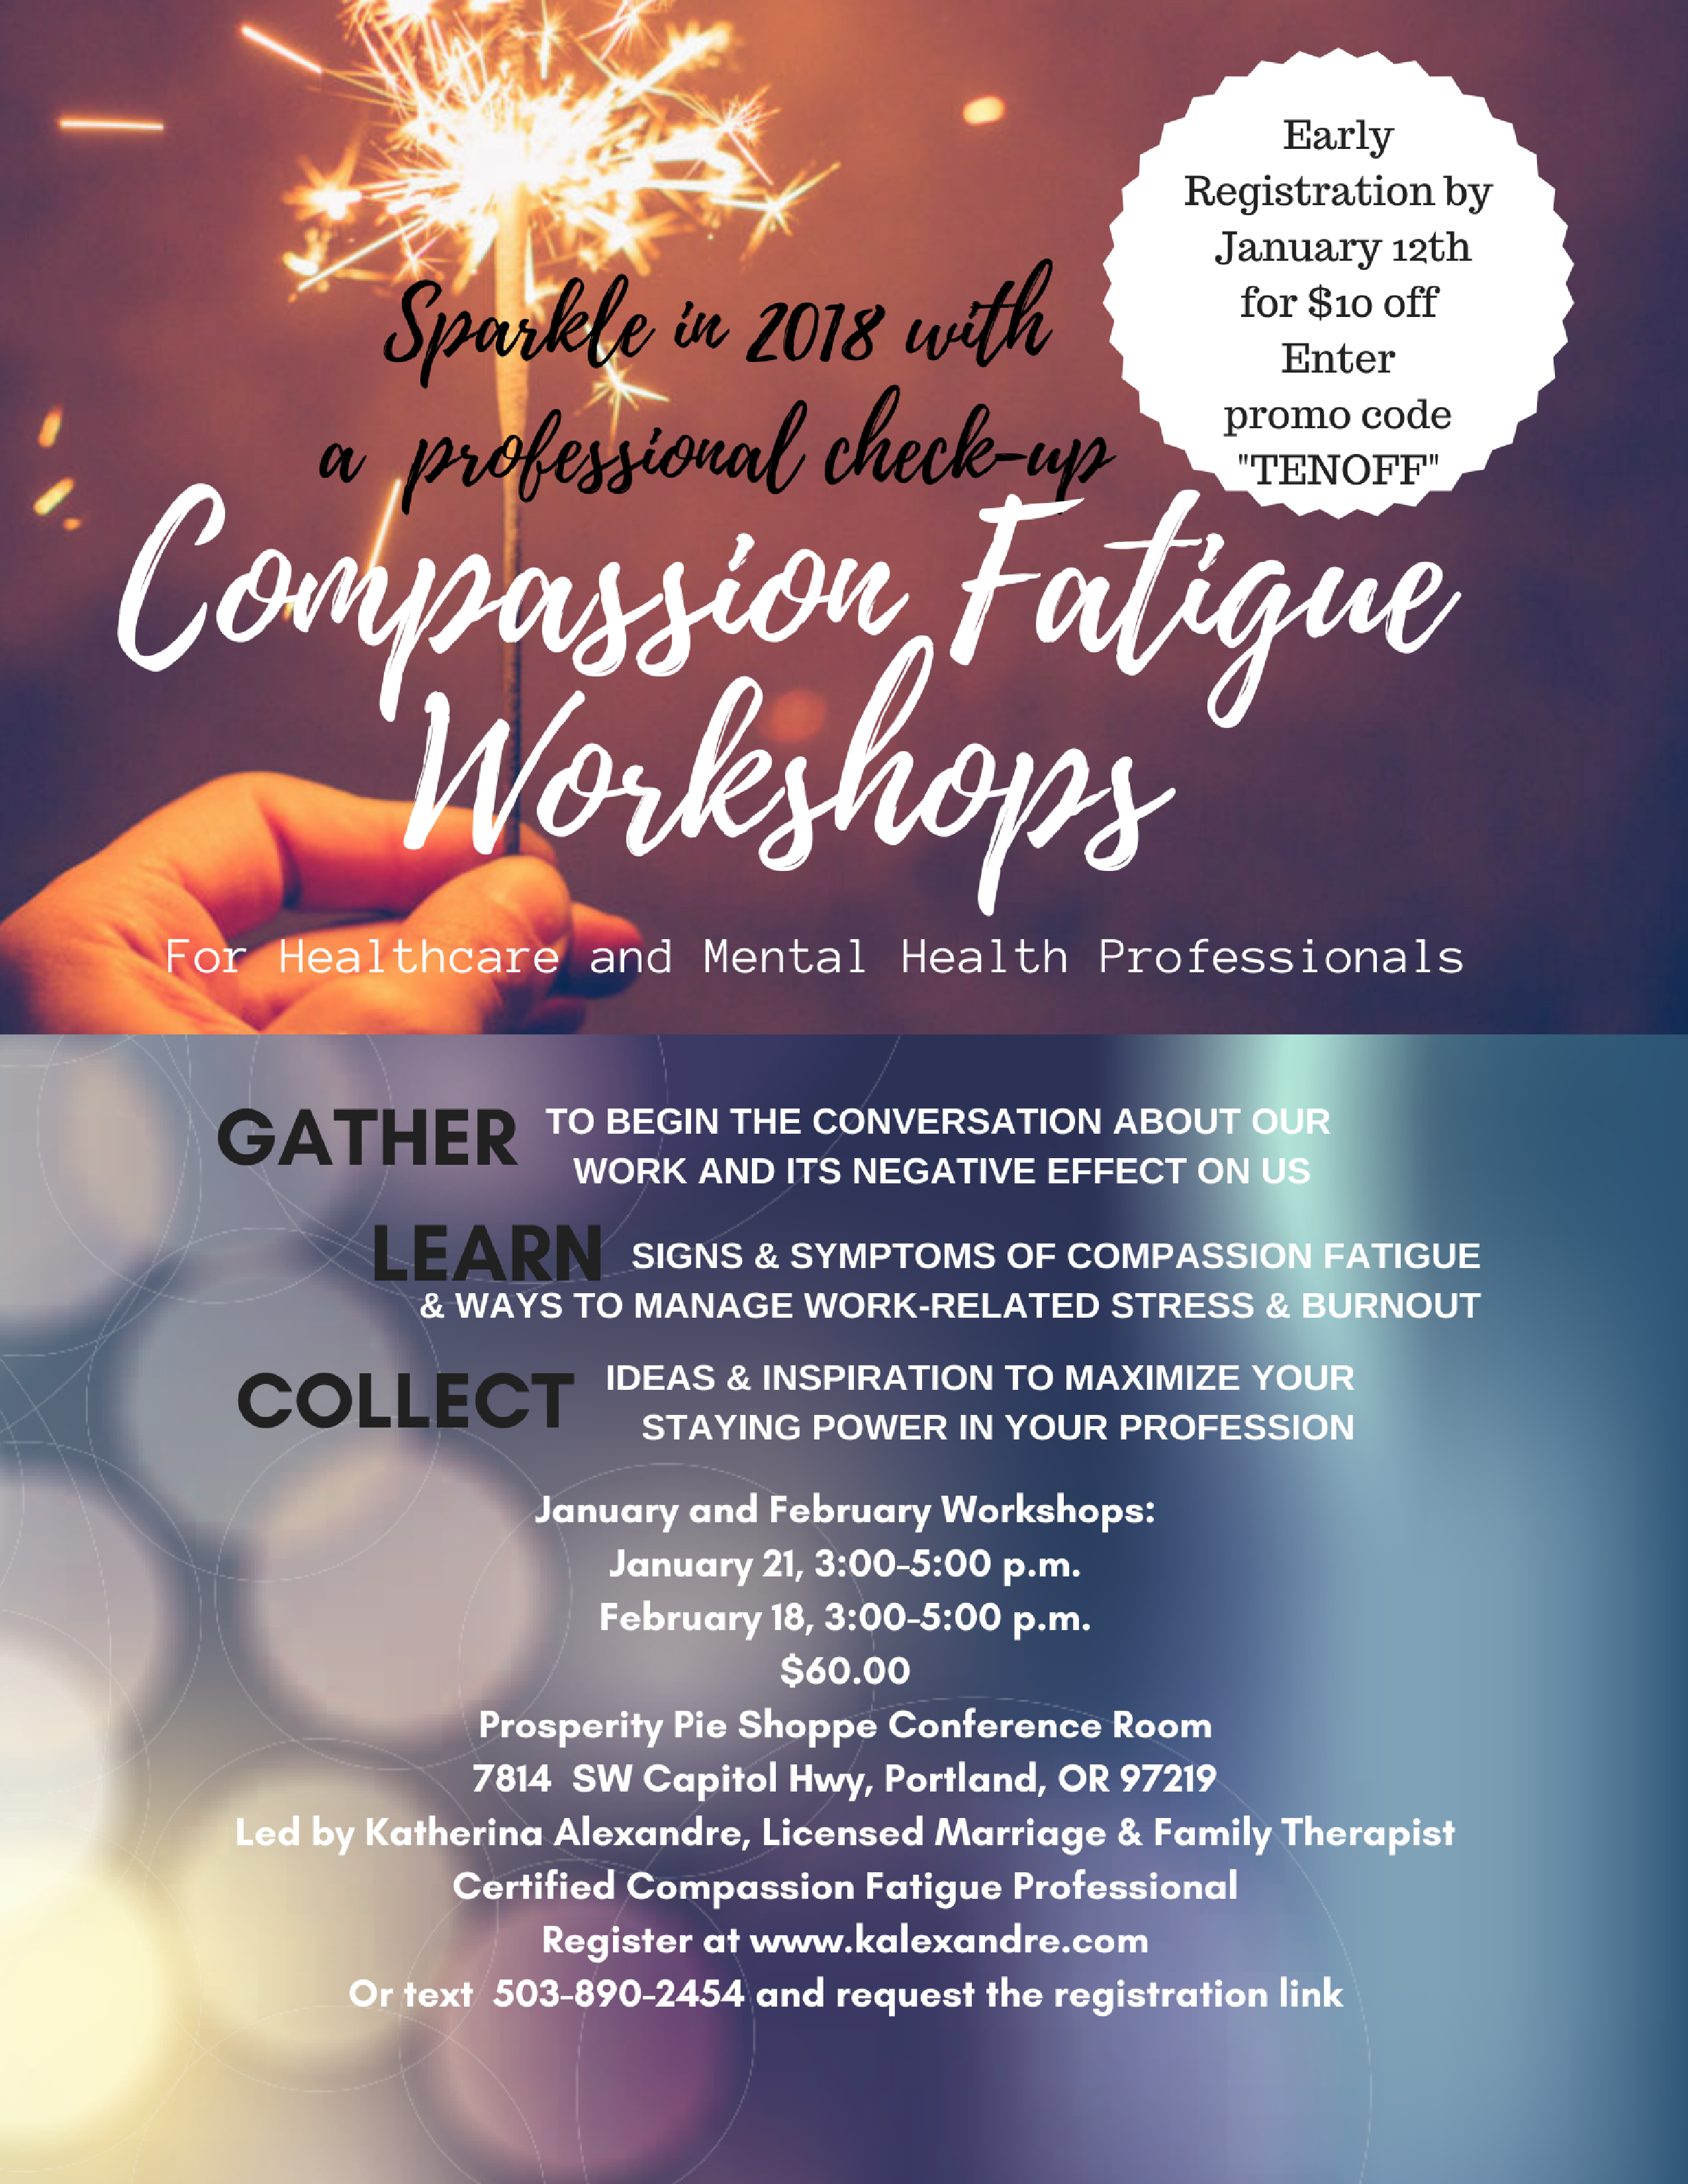 compassion fatigue workshop sparkle in 2018 with a professional